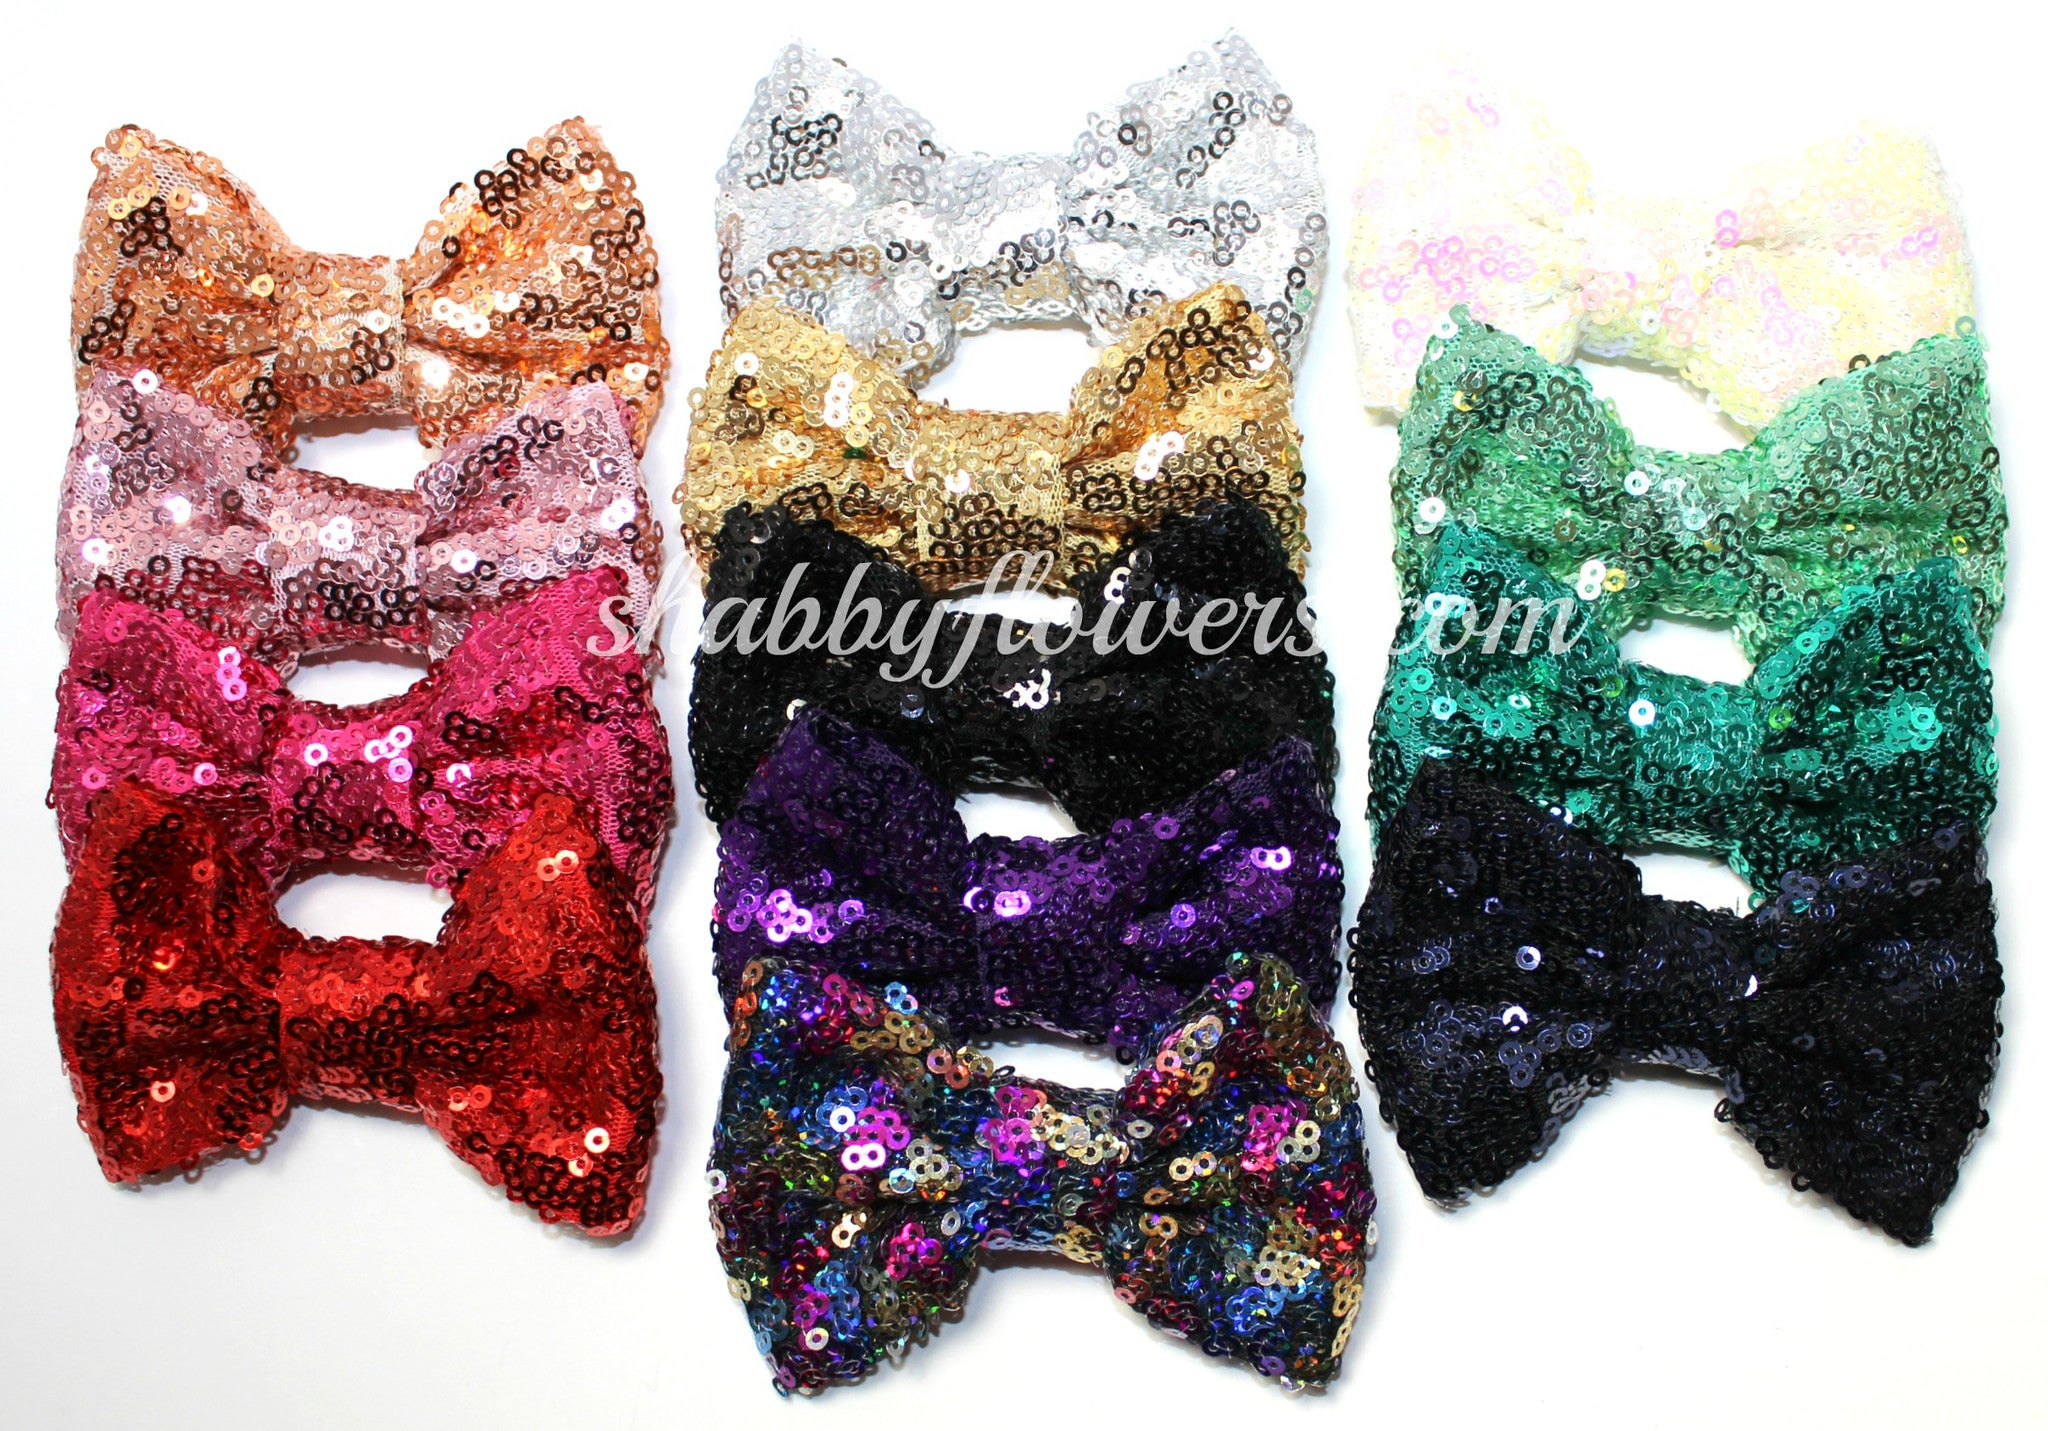 Medium Sequin Bow Pack of 15 - shabbyflowers.com